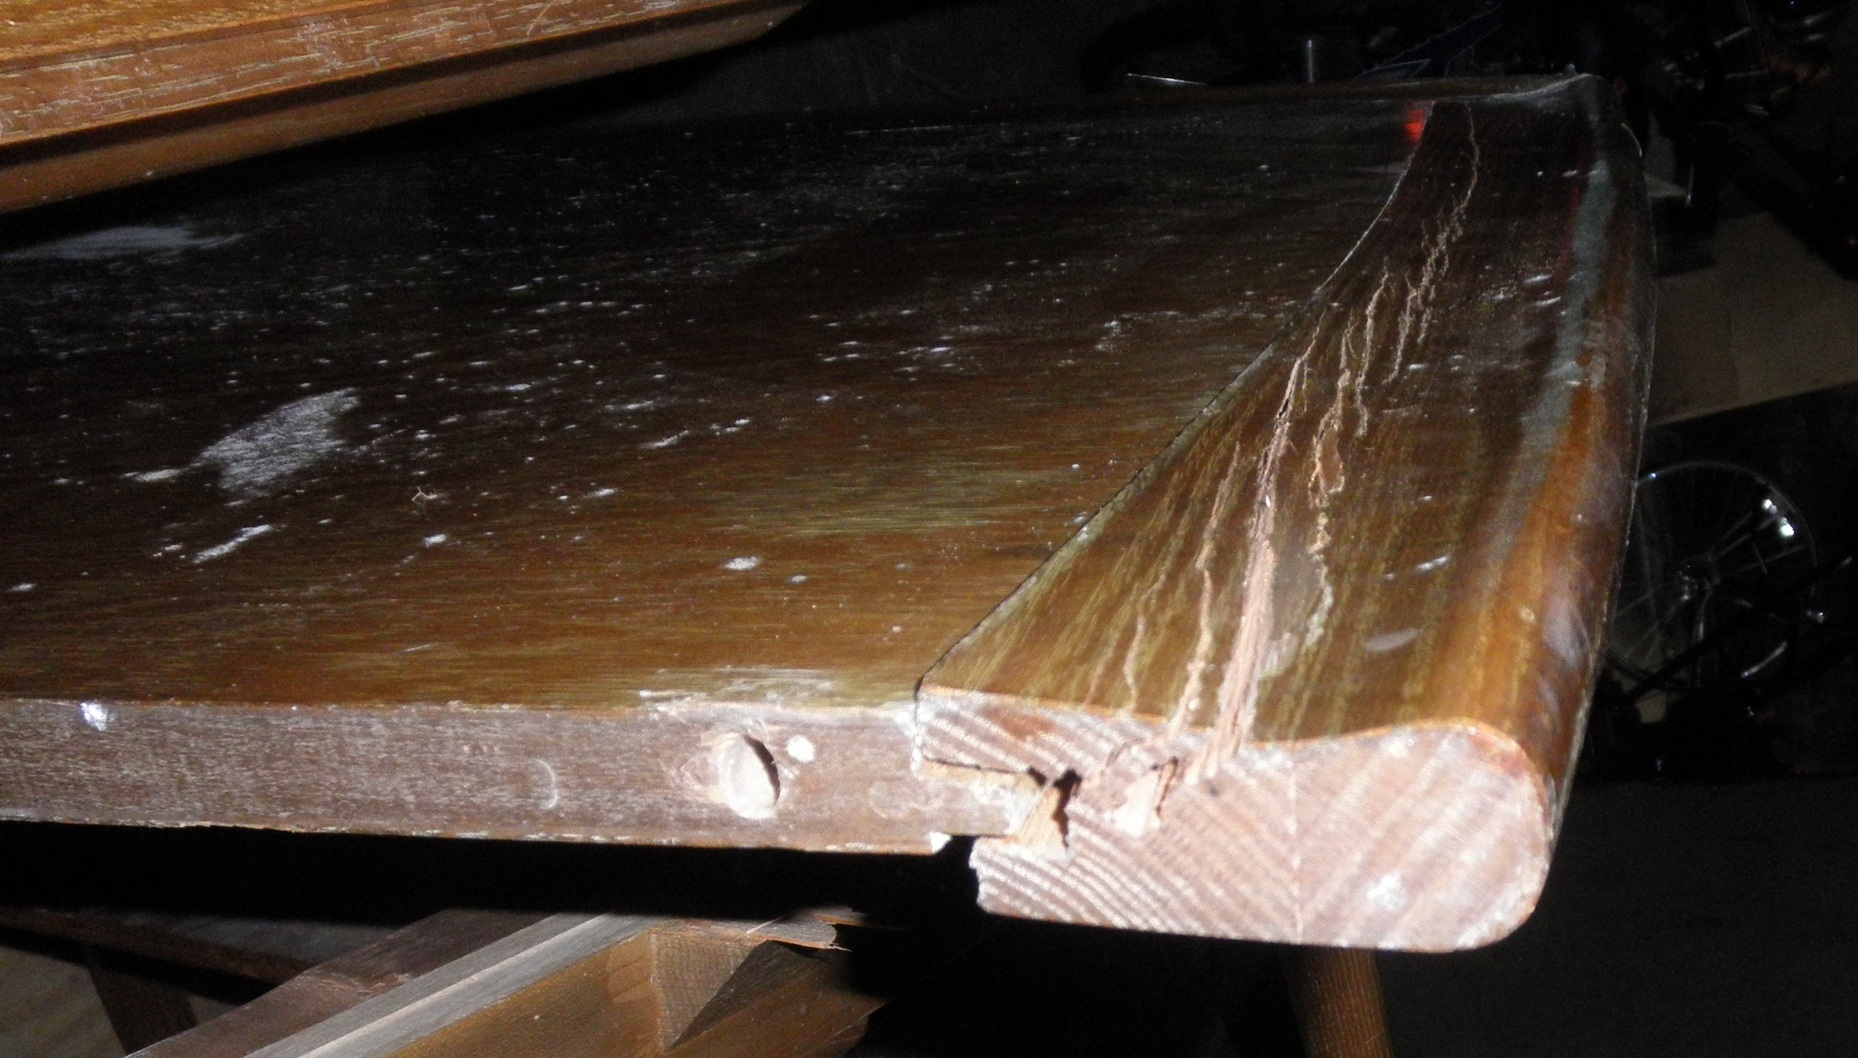 Furniture Repair Dining Table Shattered By Large Oak Tree